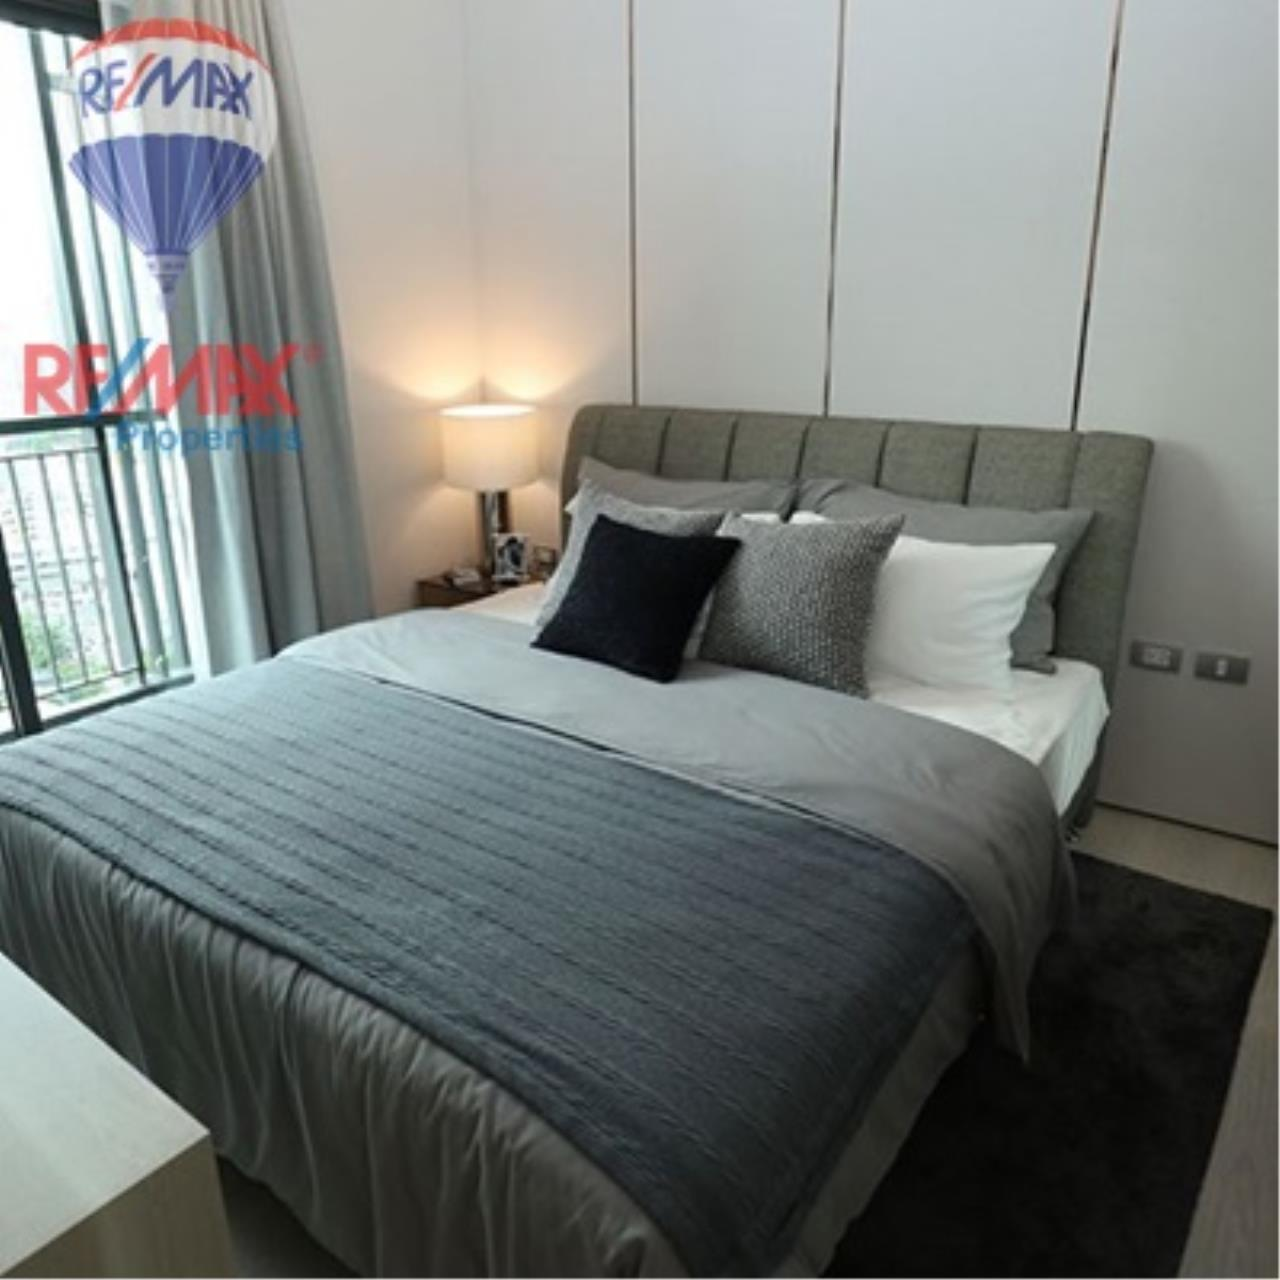 RE/MAX Properties Agency's FOR SALE - RHYTHM SUKHUMVIT 36-38 1 BED 33 SQM  7